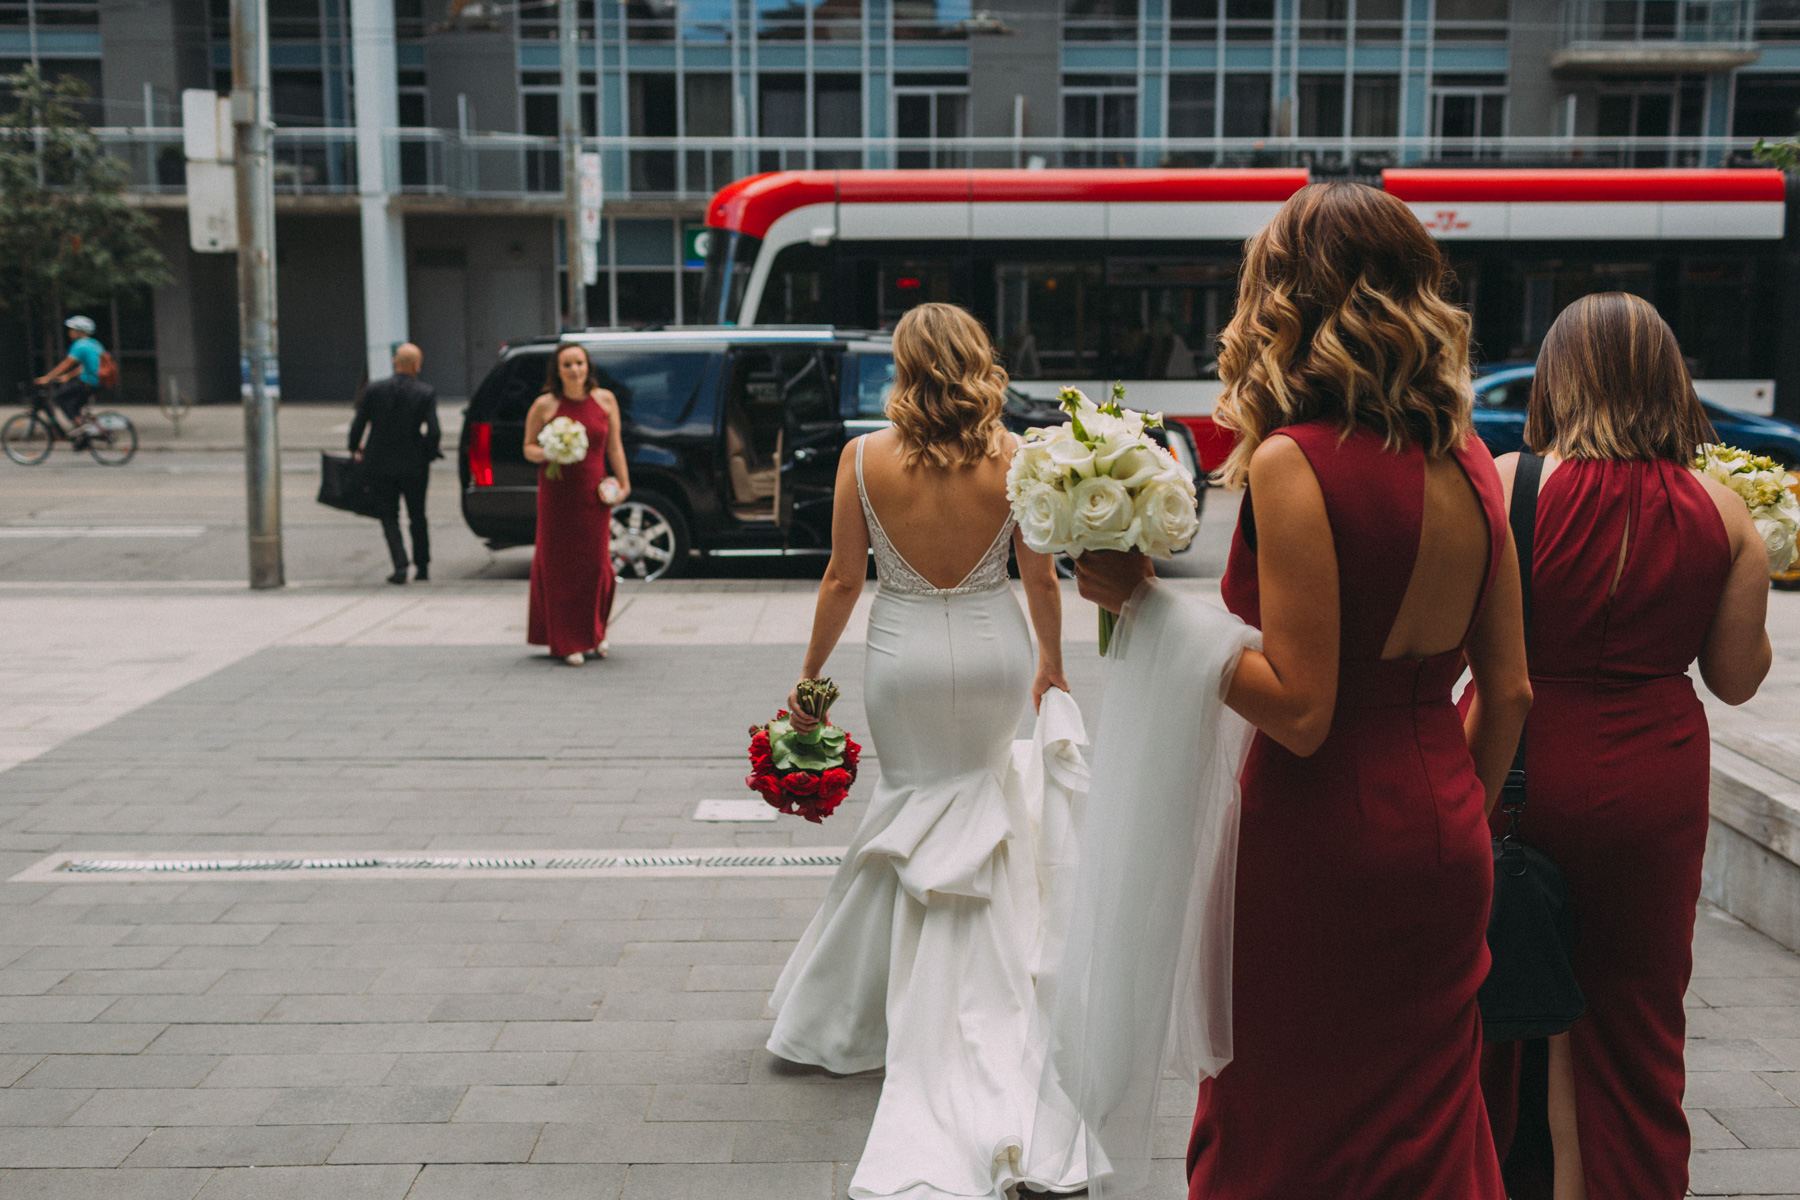 Thompson-Landry-Gallery-wedding-photos-Toronto-by-Sam-Wong-of-Artanis-Collective-Polina-Zarko_0013.jpg